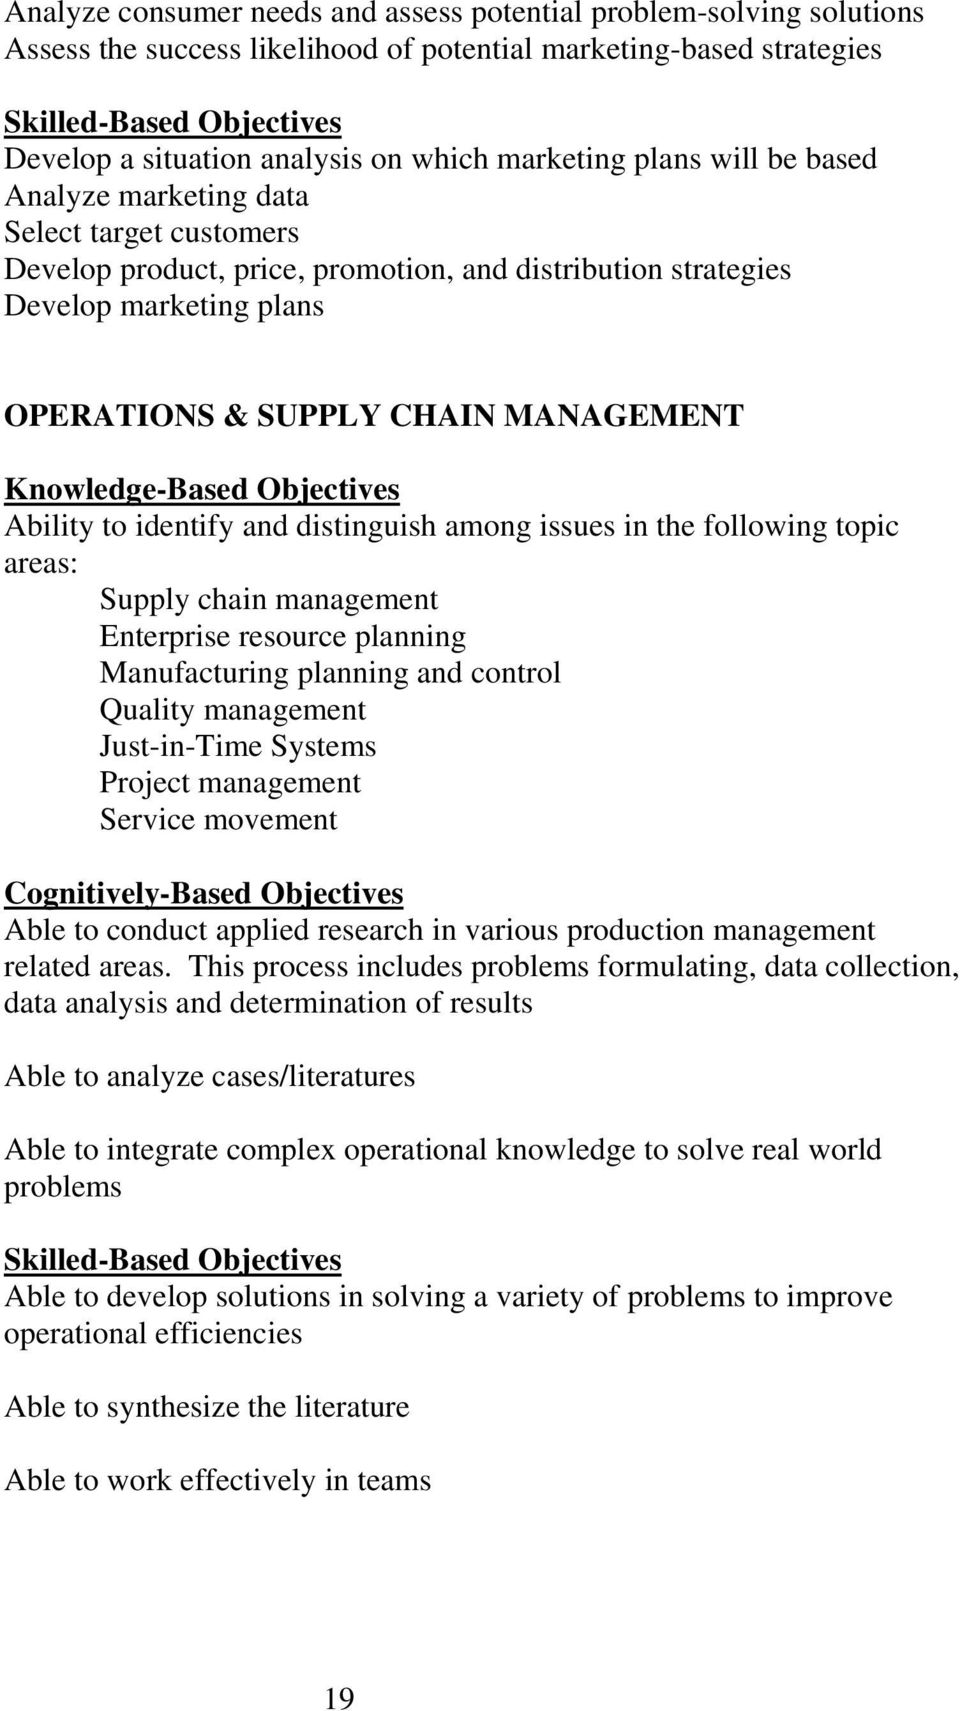 MANAGEMENT Knowledge-Based Objectives Ability to identify and distinguish among issues in the following topic areas: Supply chain management Enterprise resource planning Manufacturing planning and